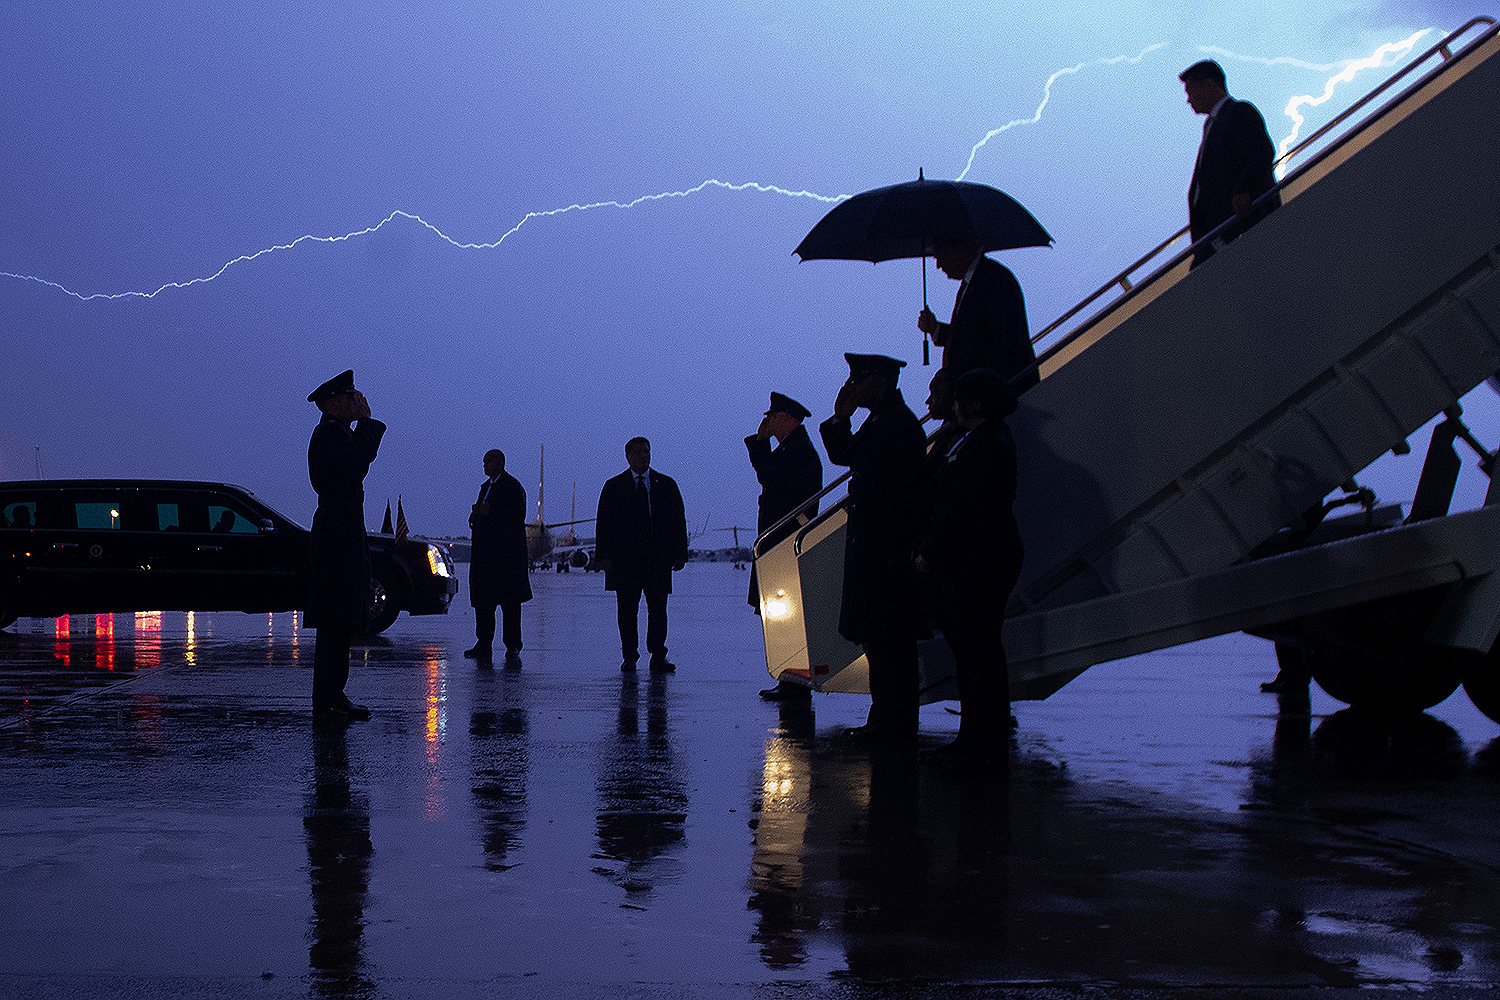 U.S. President Donald Trump disembarks from Air Force One as lightning splits the sky during a storm at Joint Base Andrews in Maryland on Aug. 28. SAUL LOEB/AFP via Getty Images